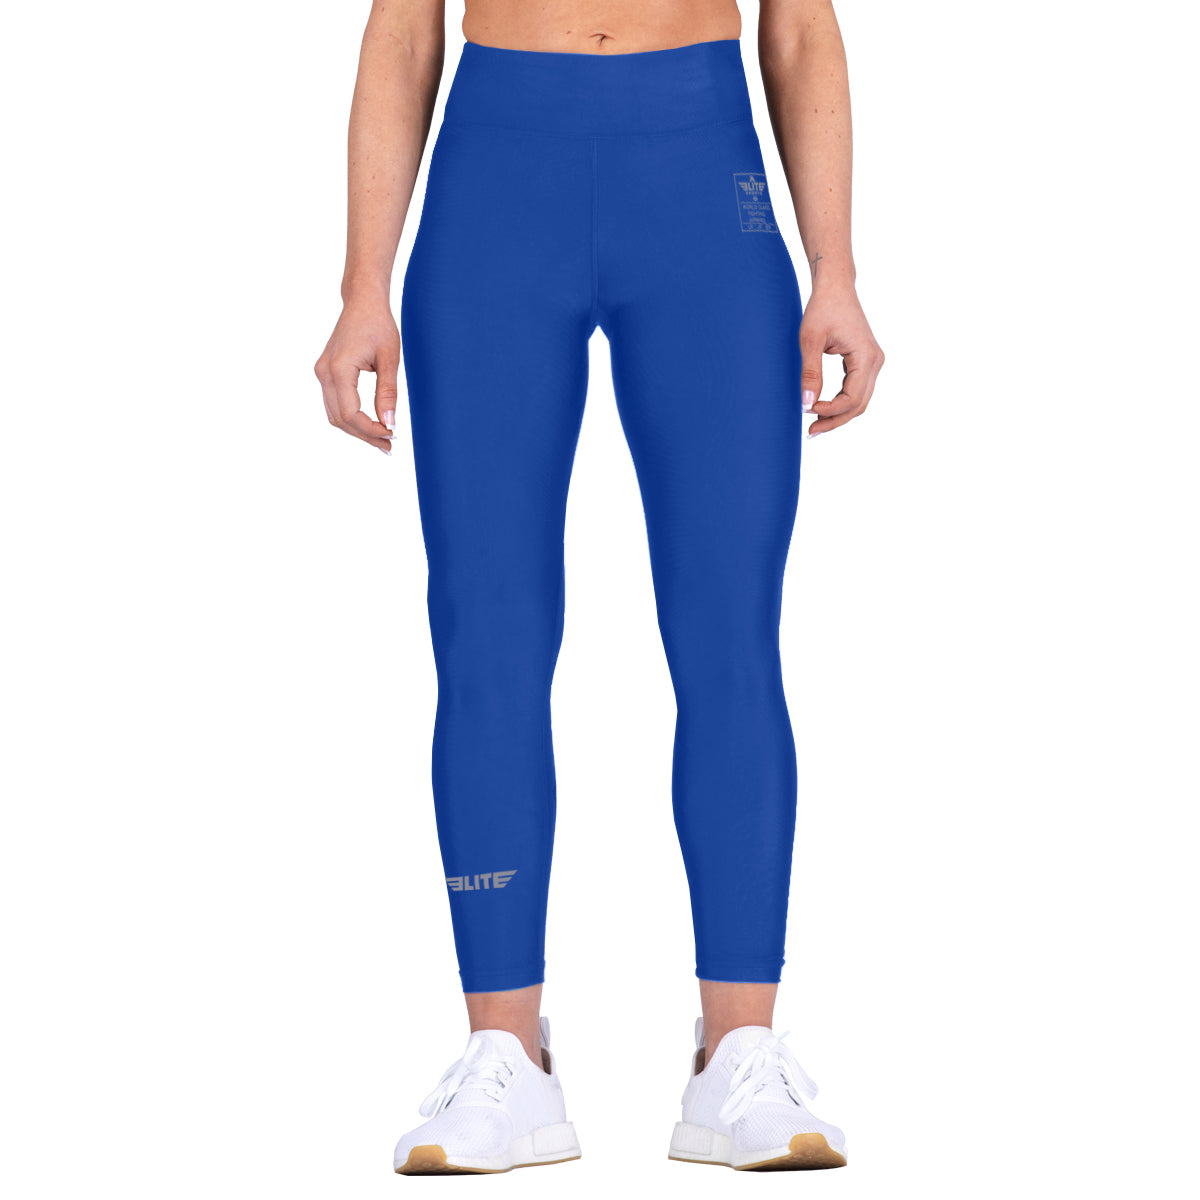 Elite Sports Blue Women Compression Training Spat Pants